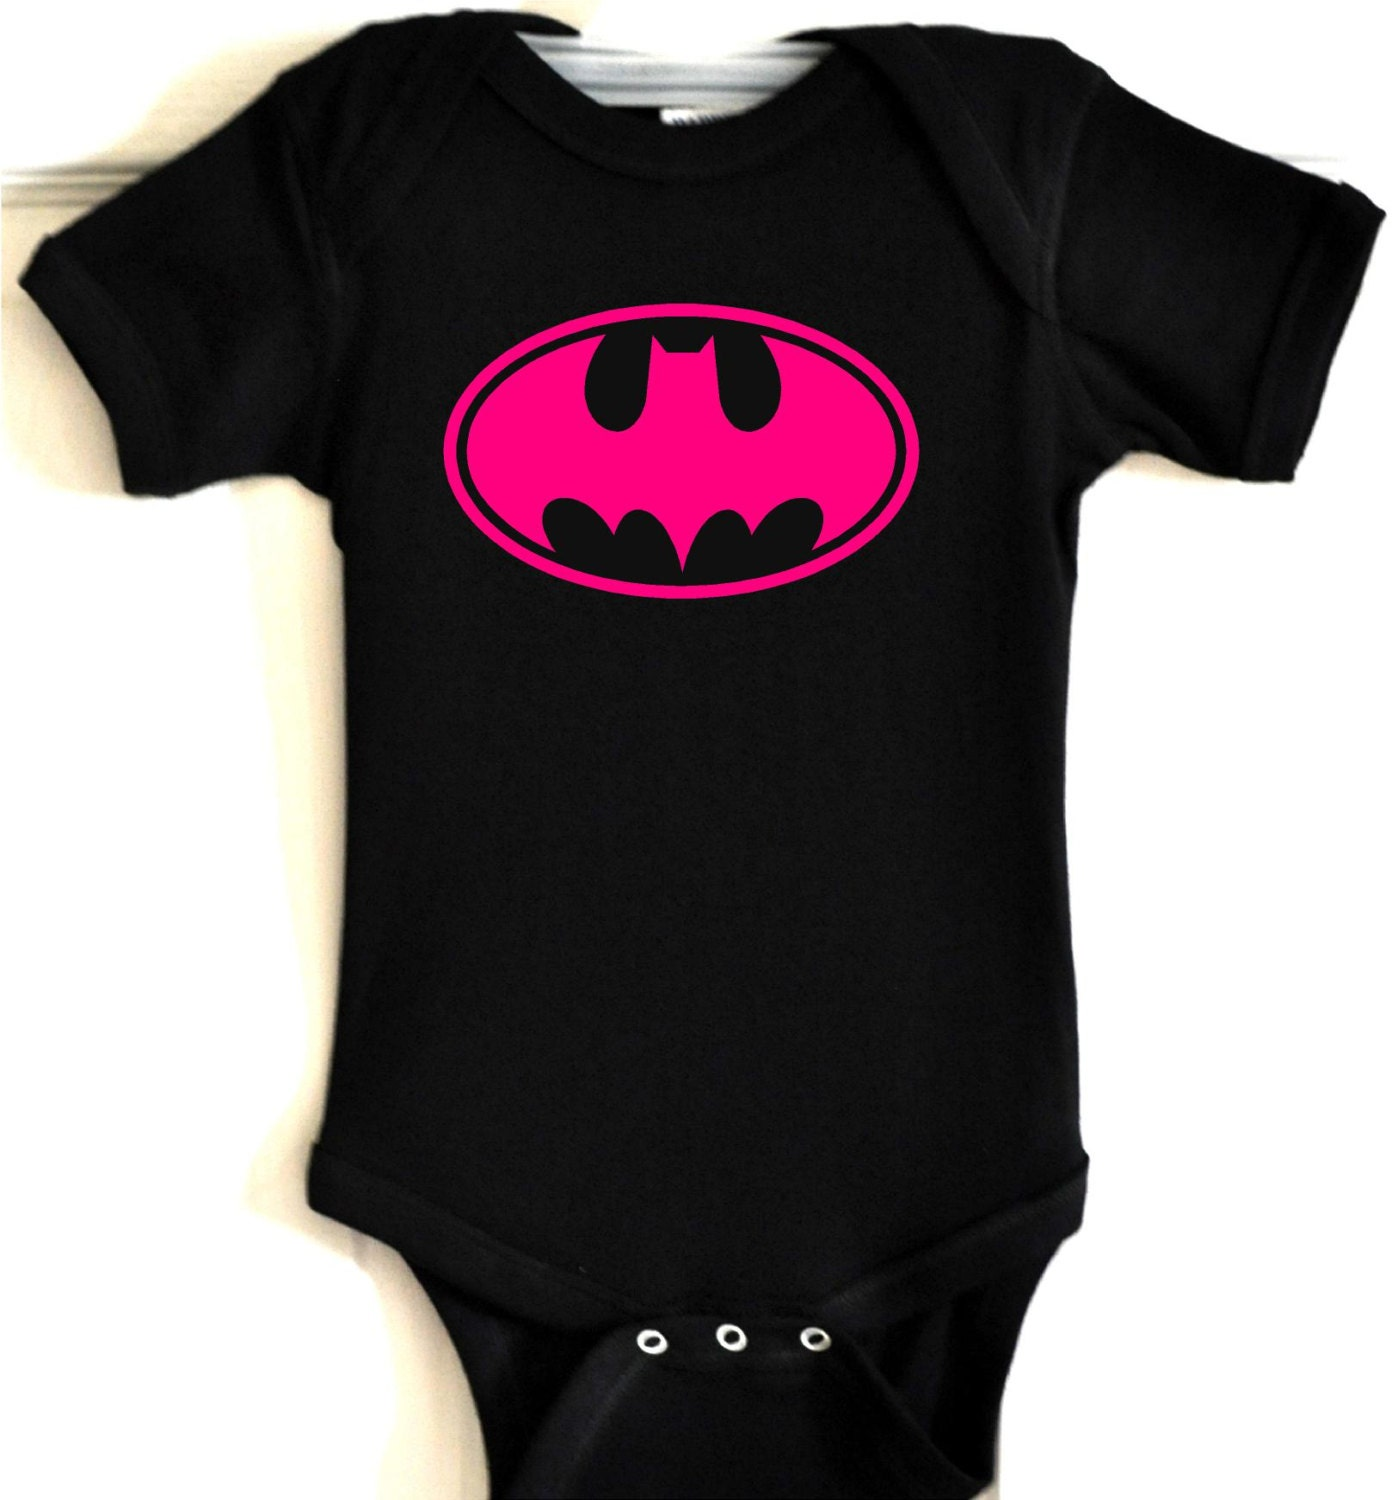 Shop for infant batman shirt online at Target. Free shipping on purchases over $35 and save 5% every day with your Target REDcard.